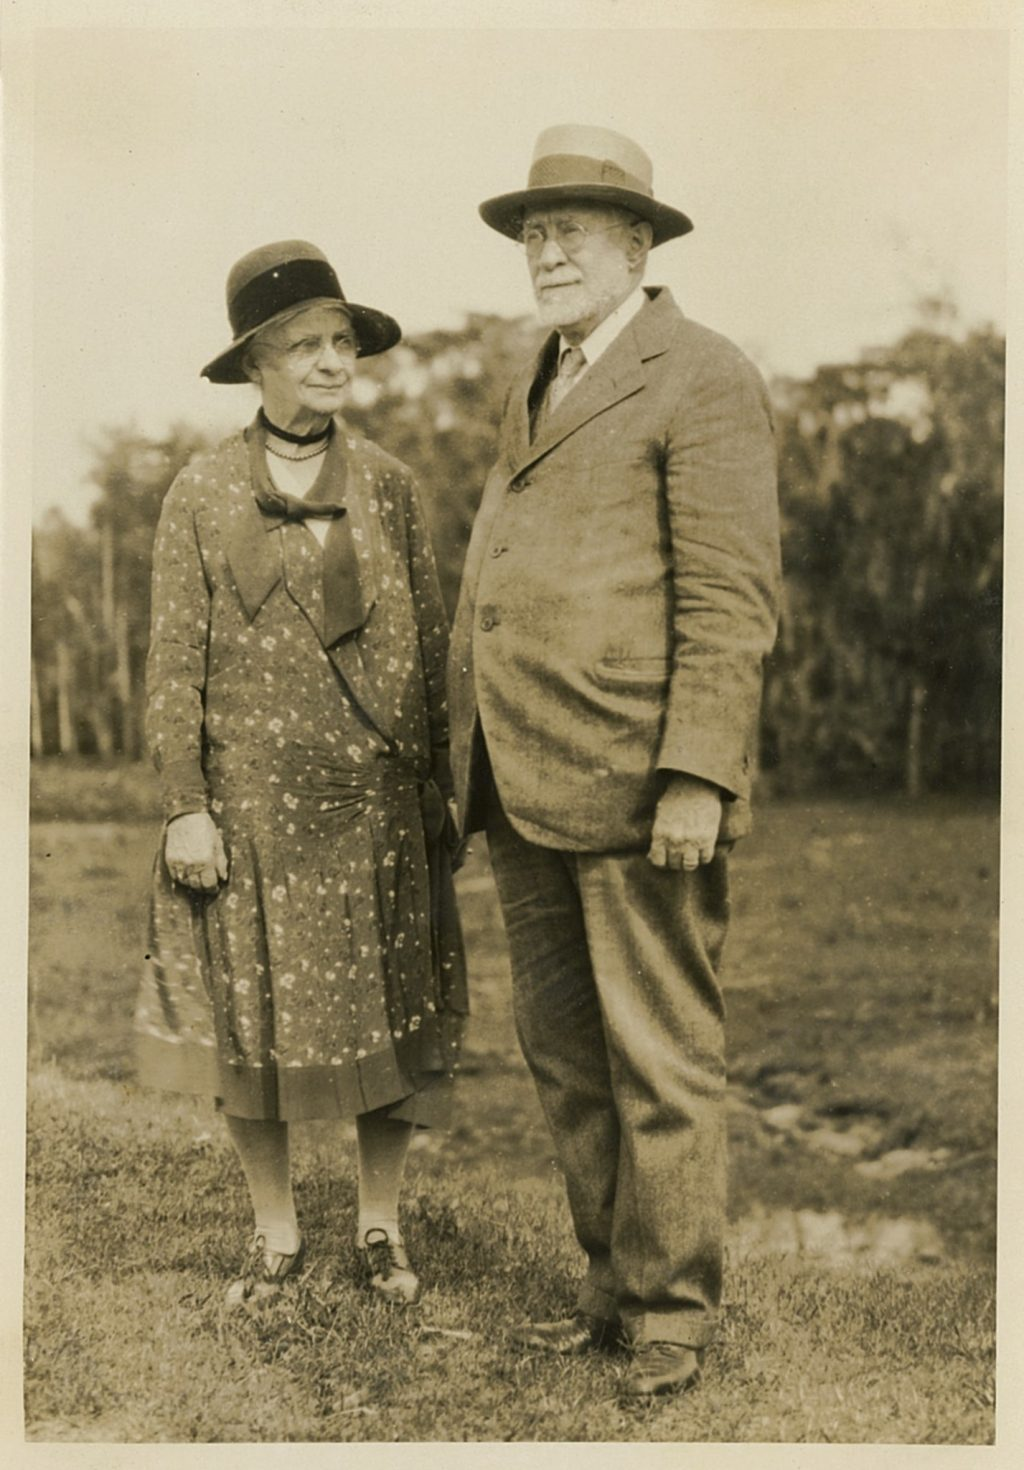 A photo of Fernald and her husband